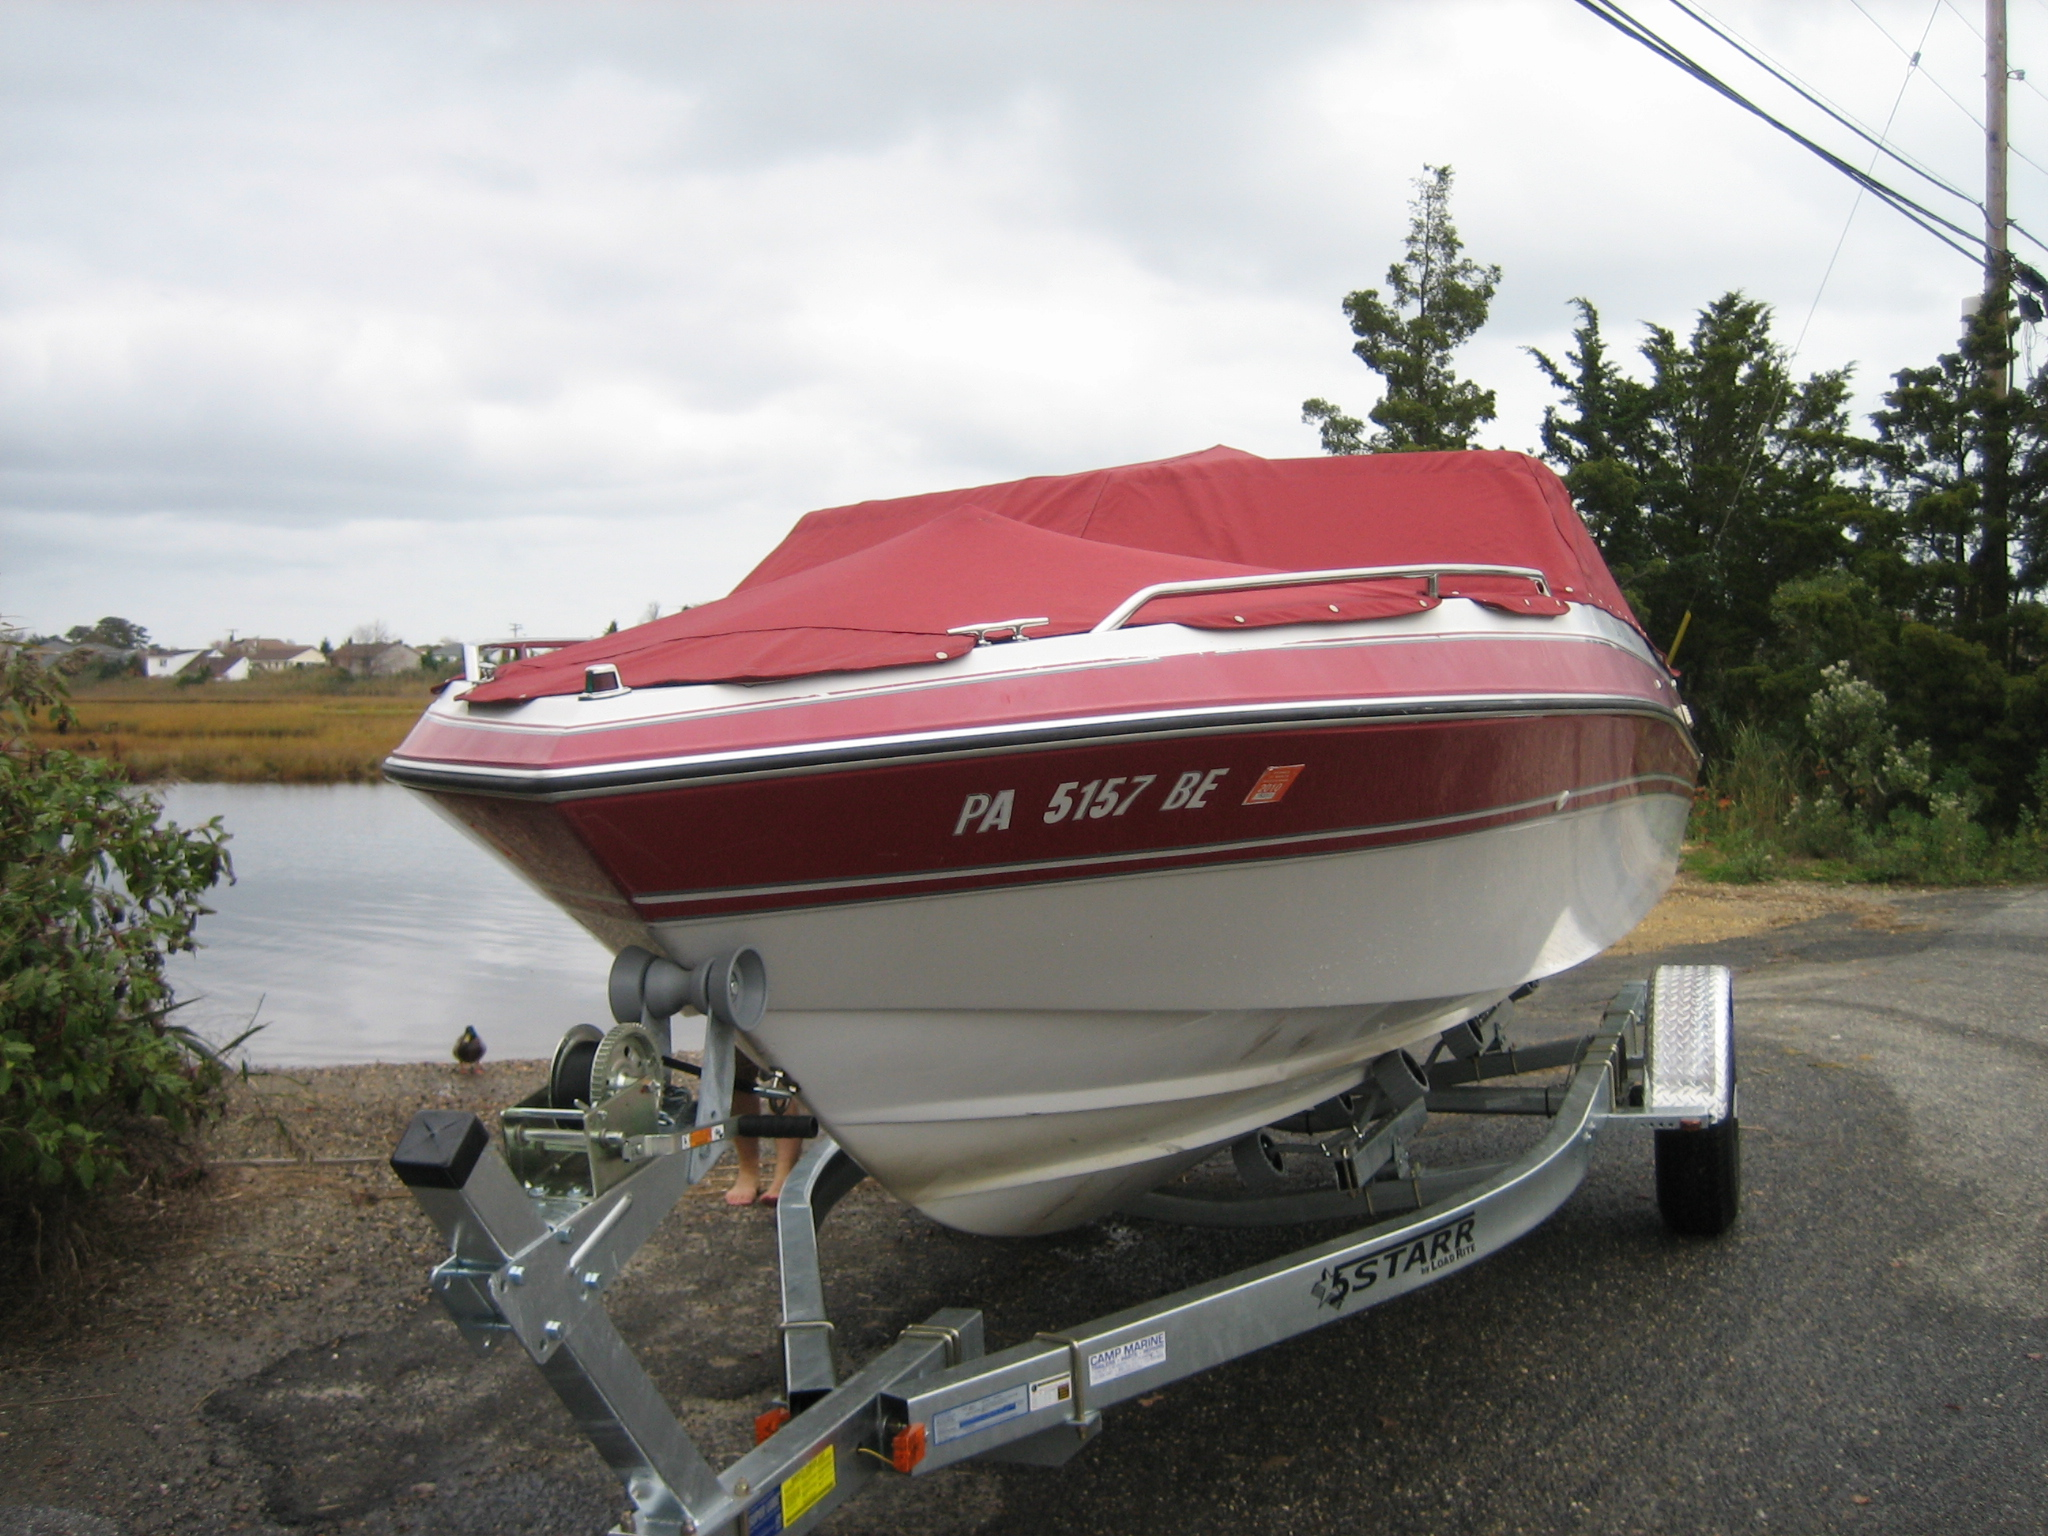 New boat on the trailer